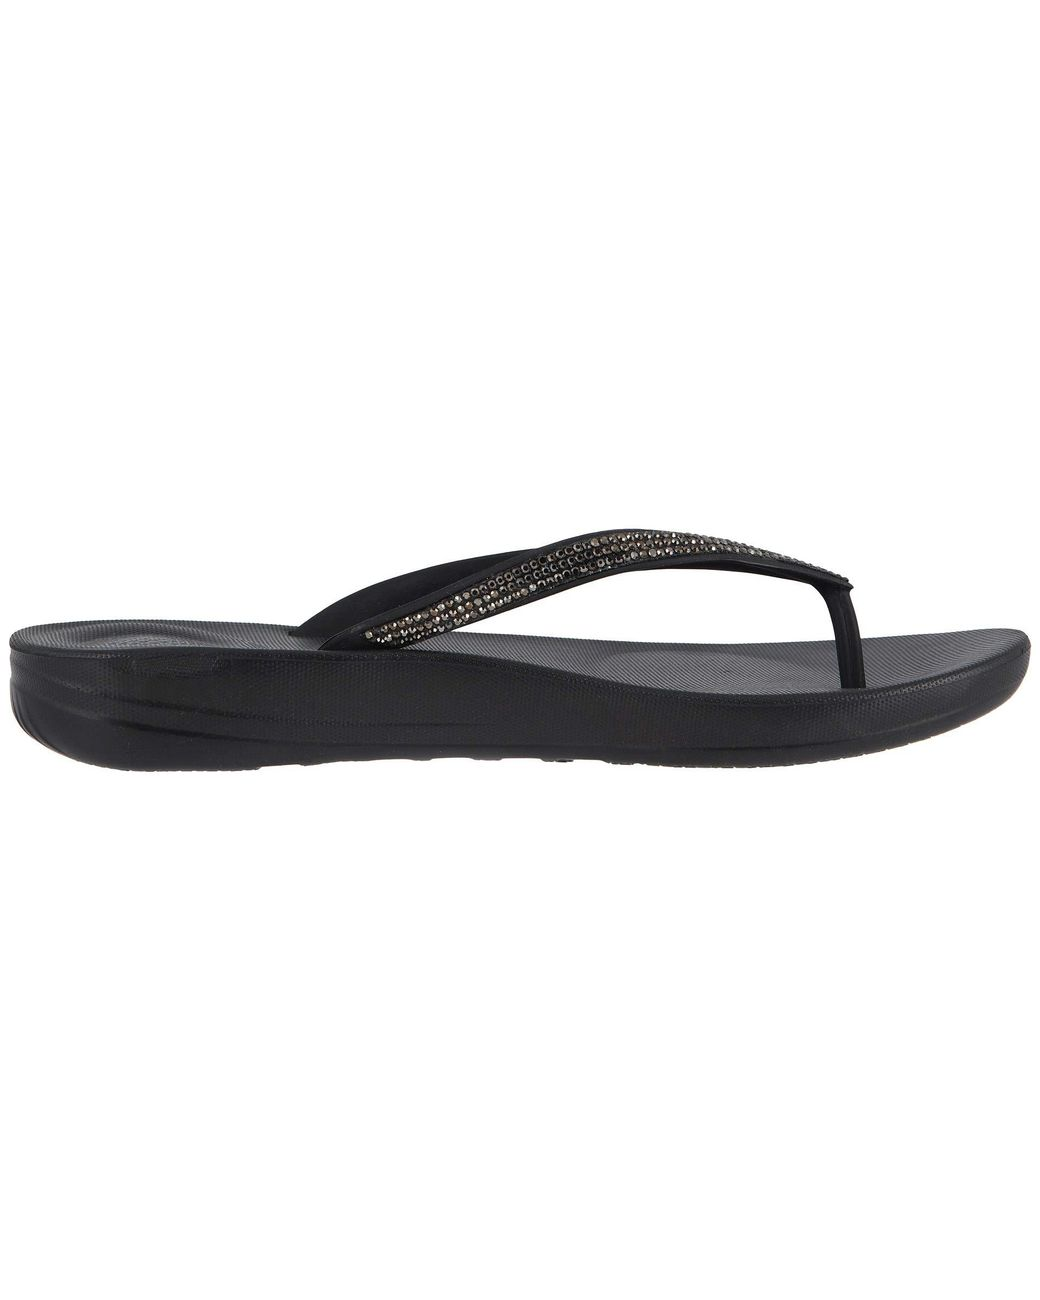 44491bc43 Lyst - Fitflop Iqushion Sparkle (black) Women s Shoes in Black